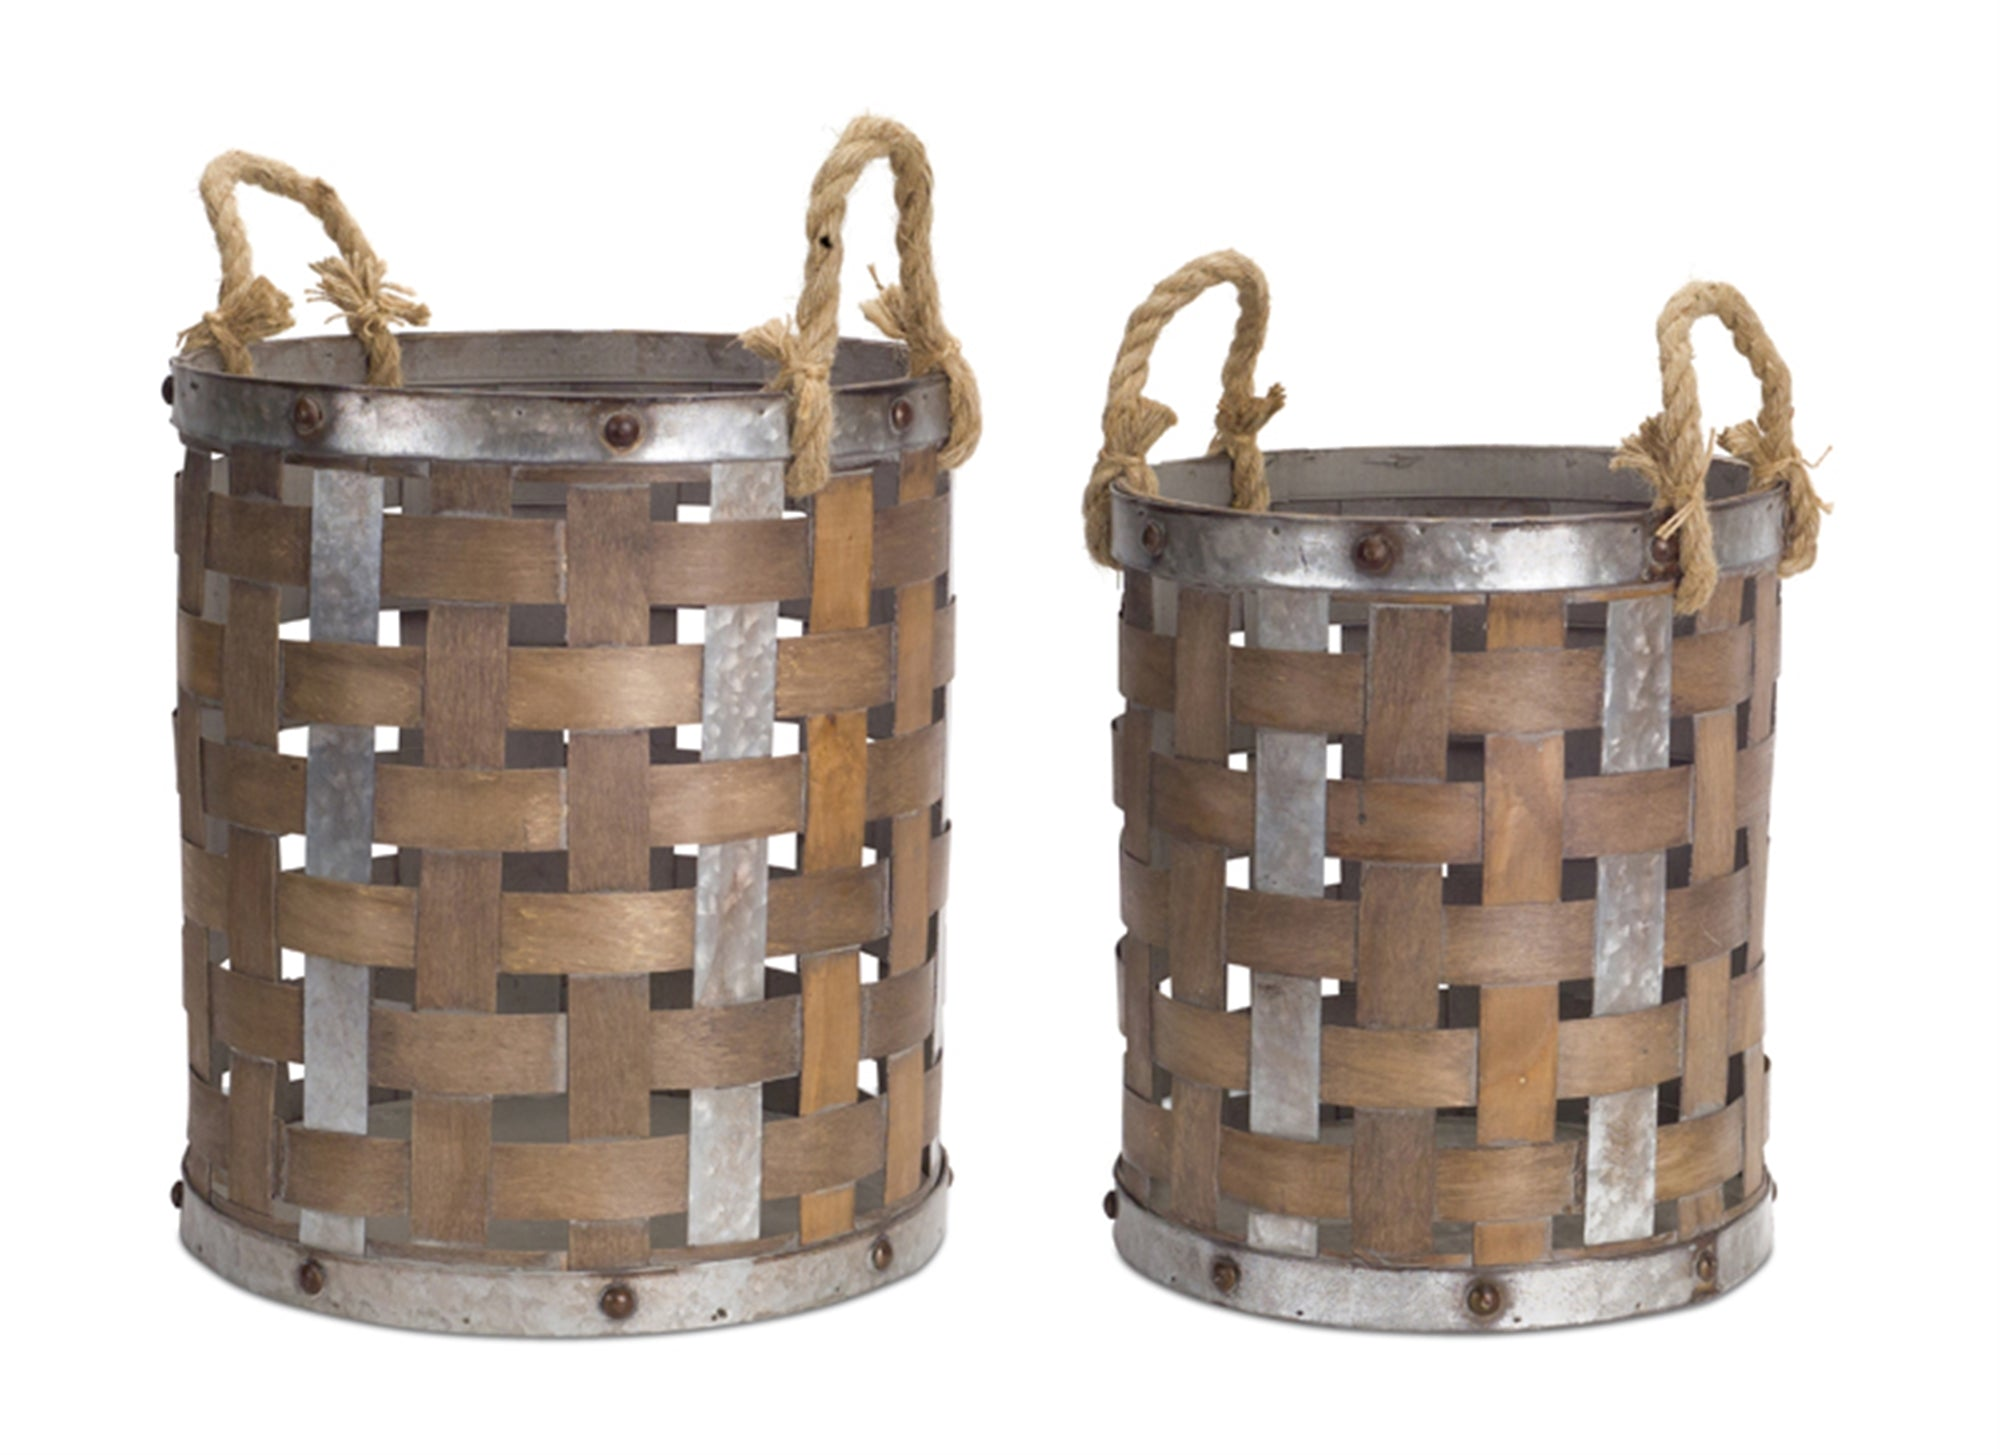 Industrial Set of Metal and Wood Pails